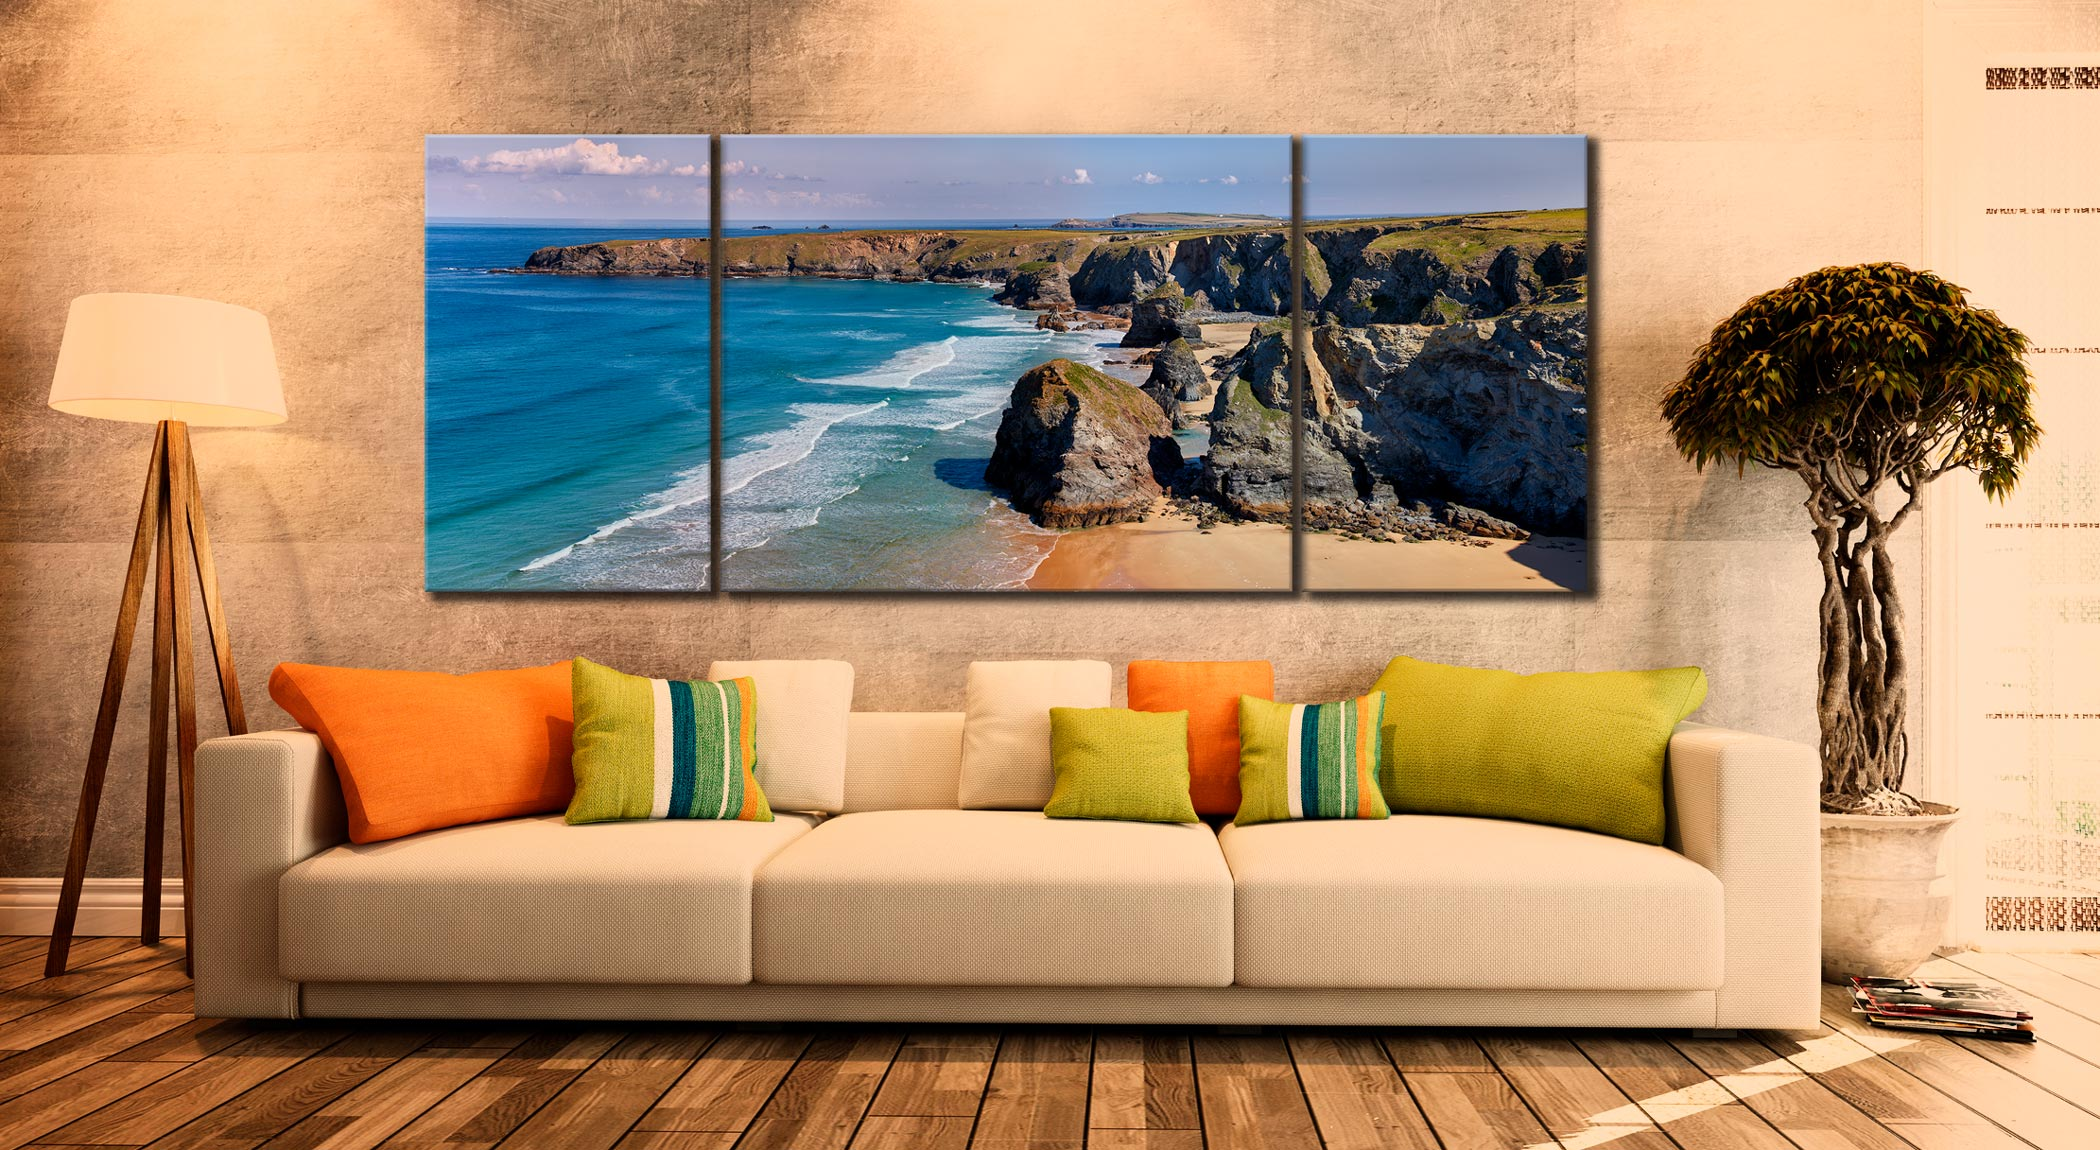 Bedruthan Rock Stacks Panorama - 3 Panel Wide Mid Canvas on Wall